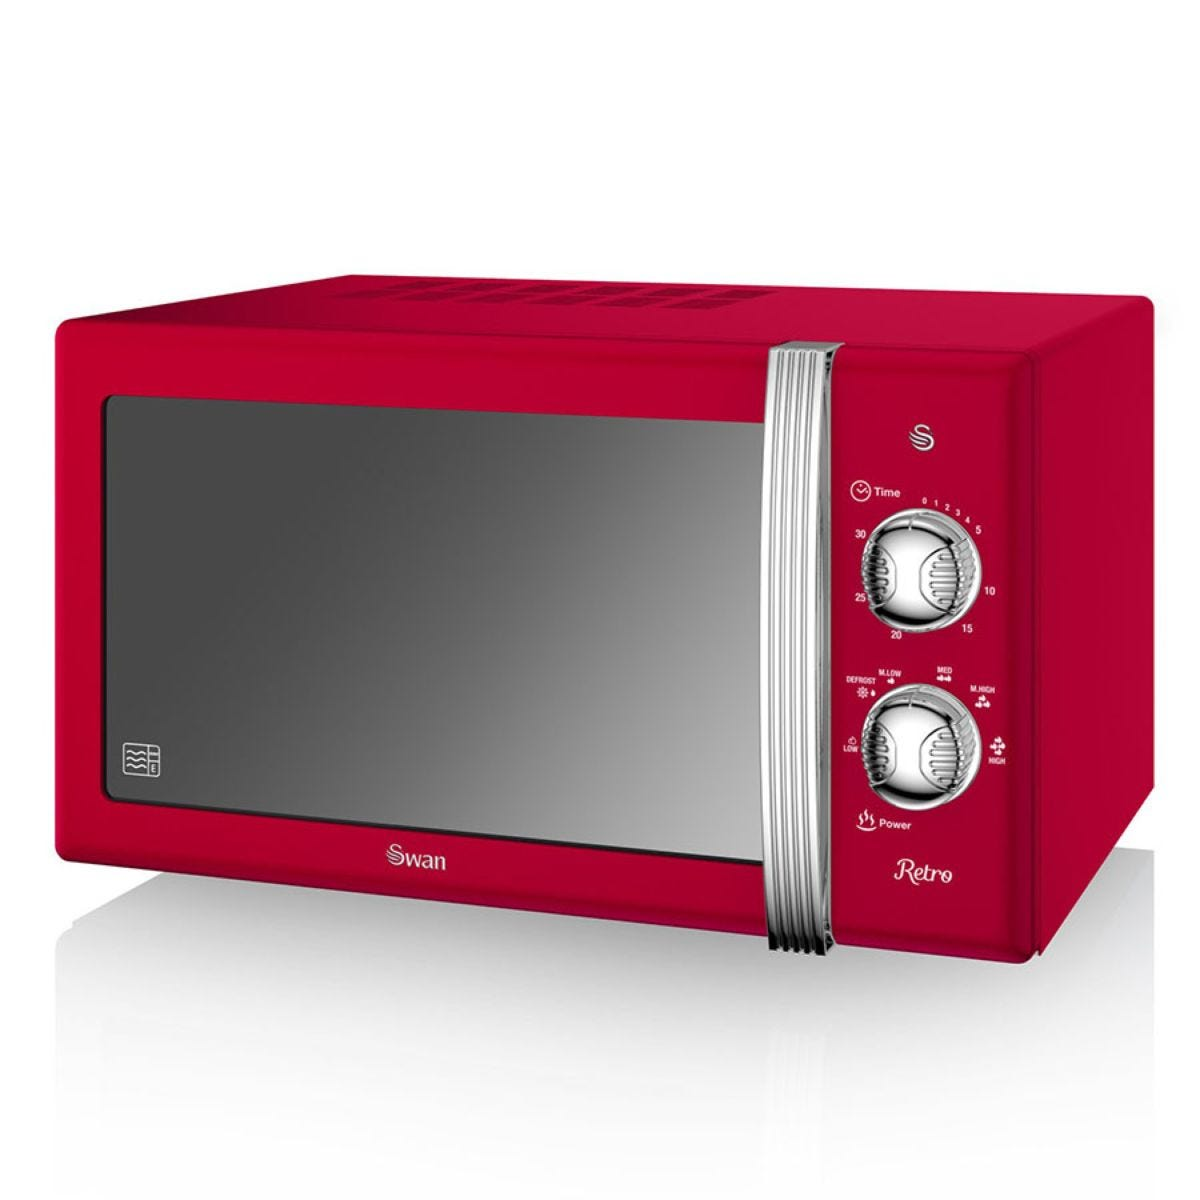 Swan Retro SM22130RN 800W 20L Solo Manual Microwave - Red